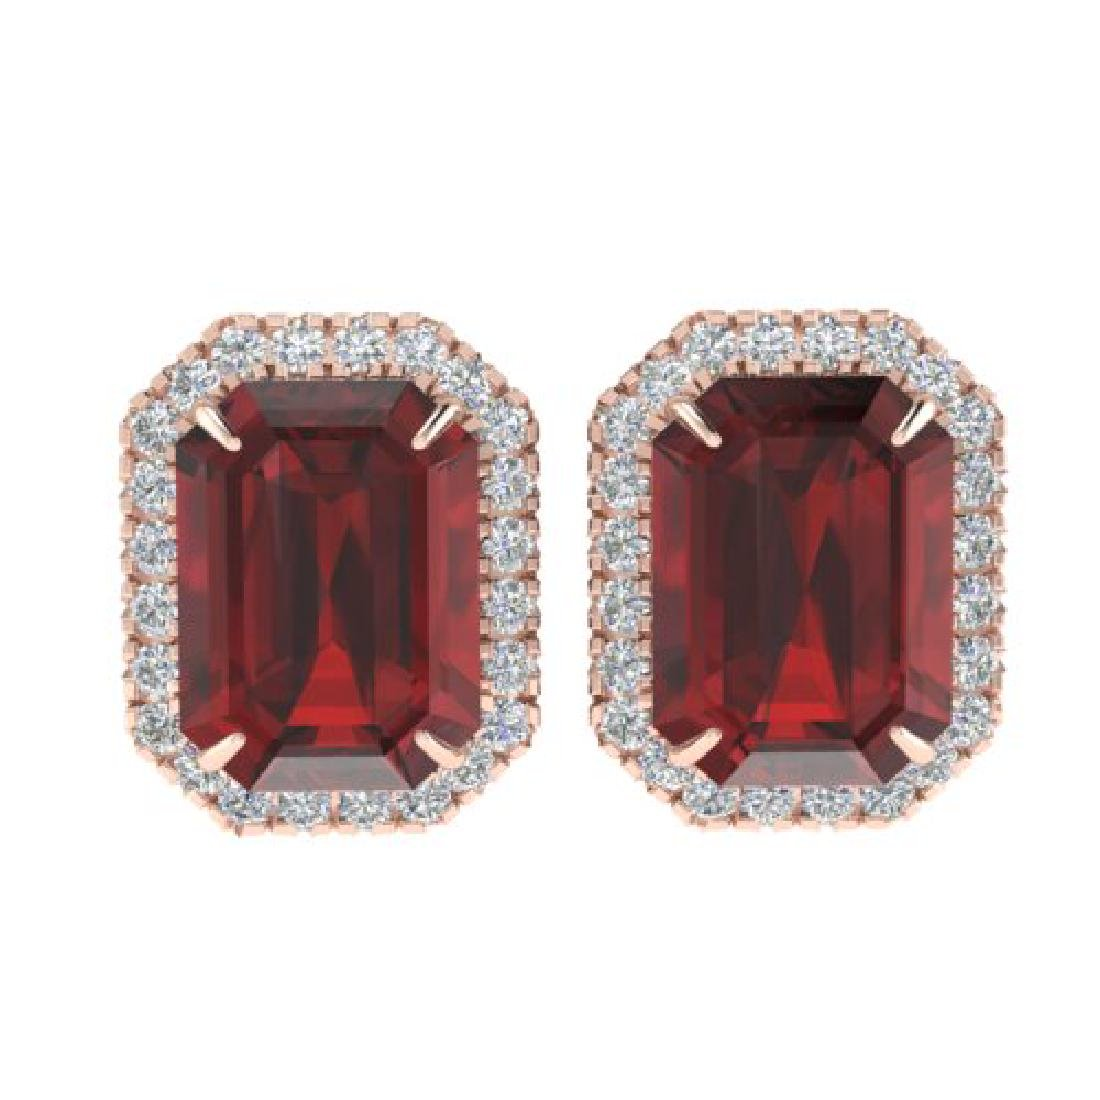 12 CTW Garnet And Micro Pave VS/SI Diamond Halo